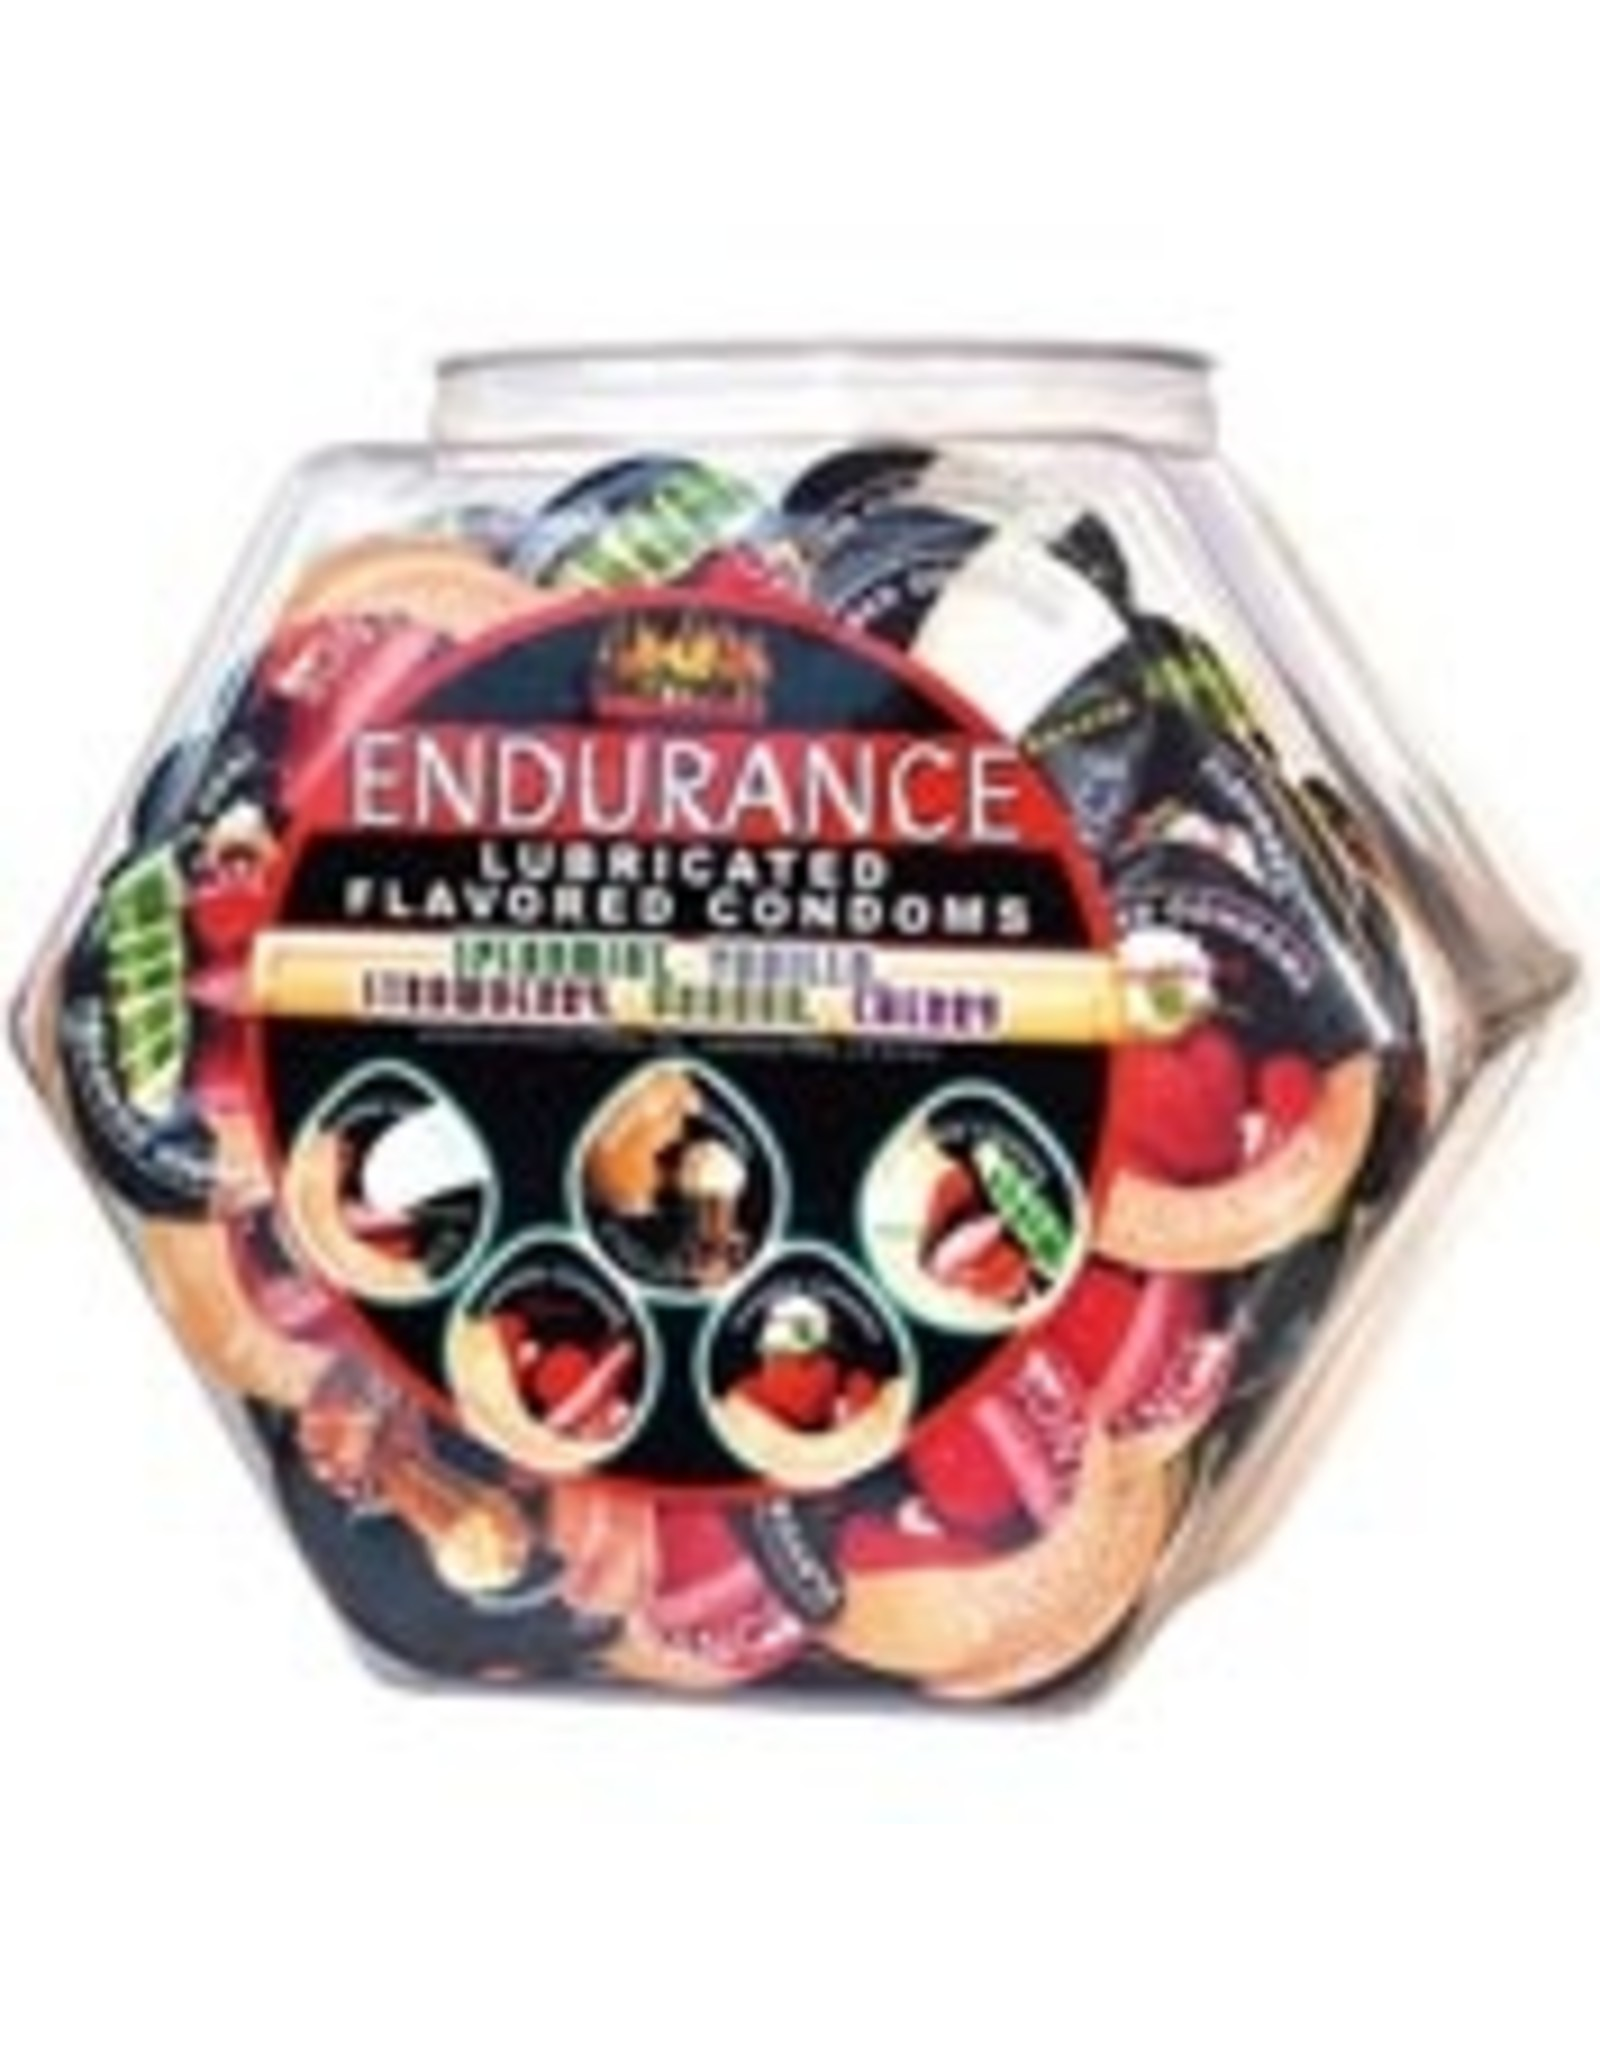 Endurance Lubricated Flavored Condoms From Display Bown